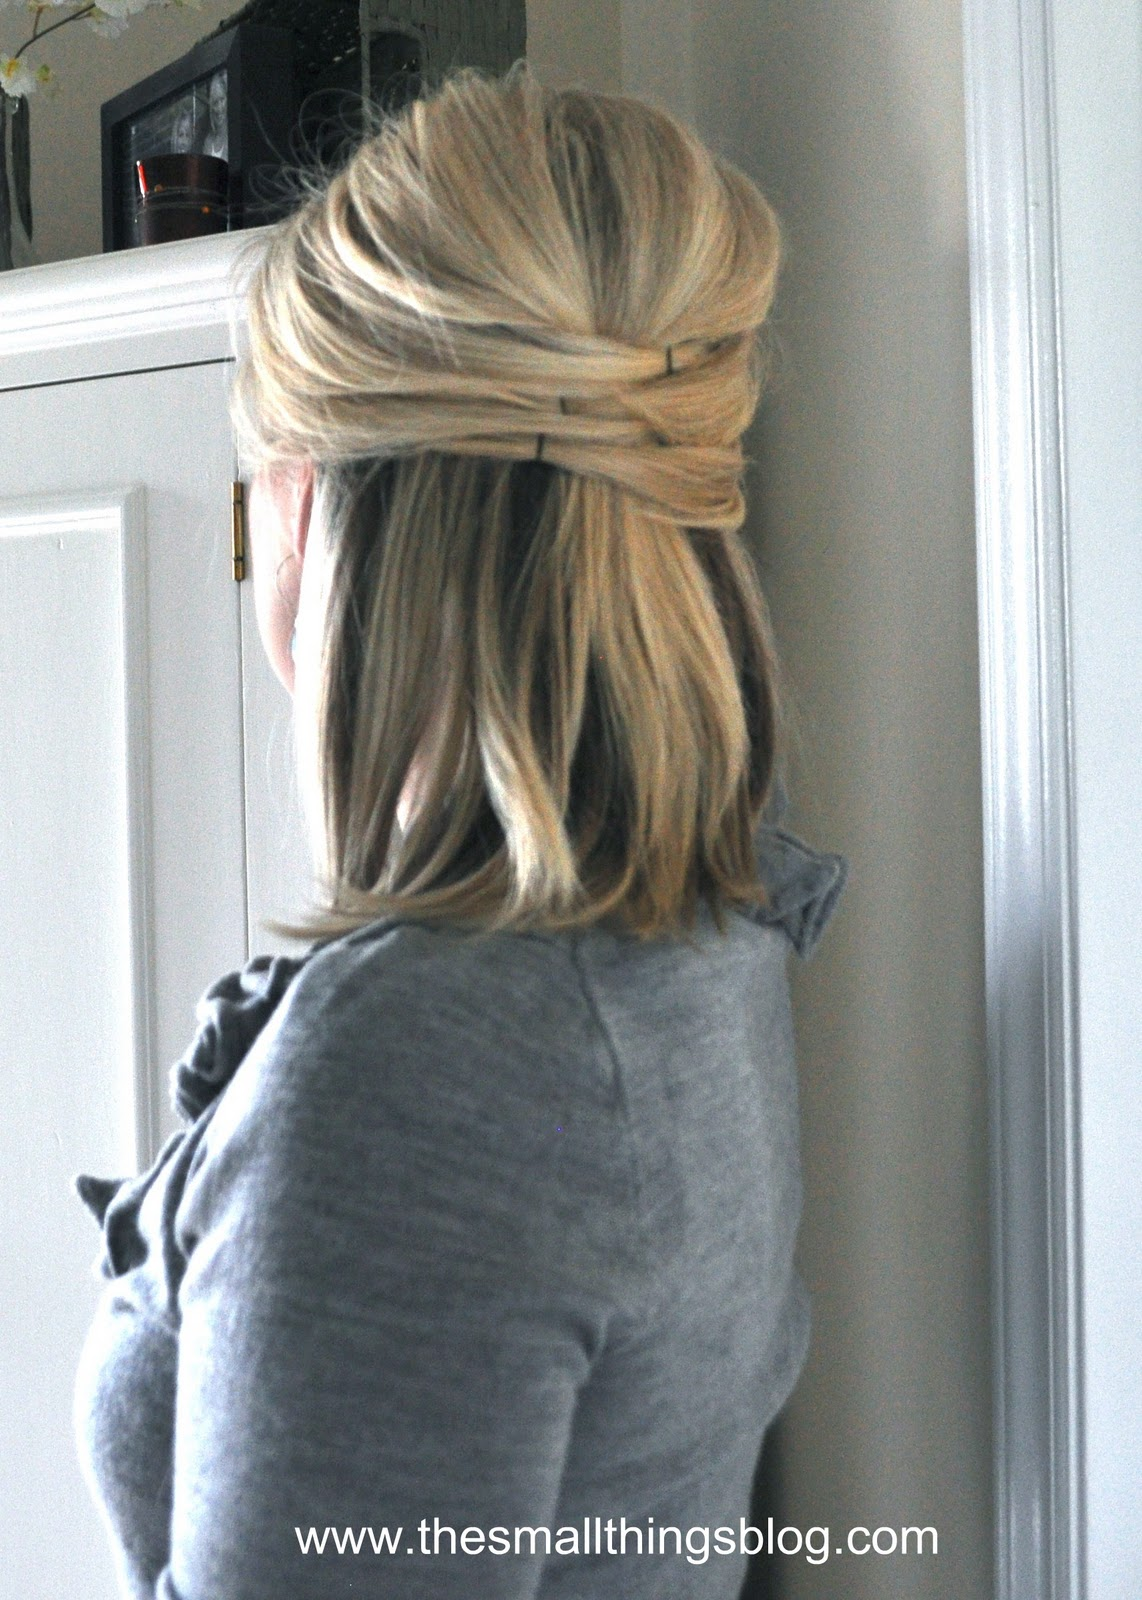 Elegant wedding hairstyles for short hair - Elegant Half Up